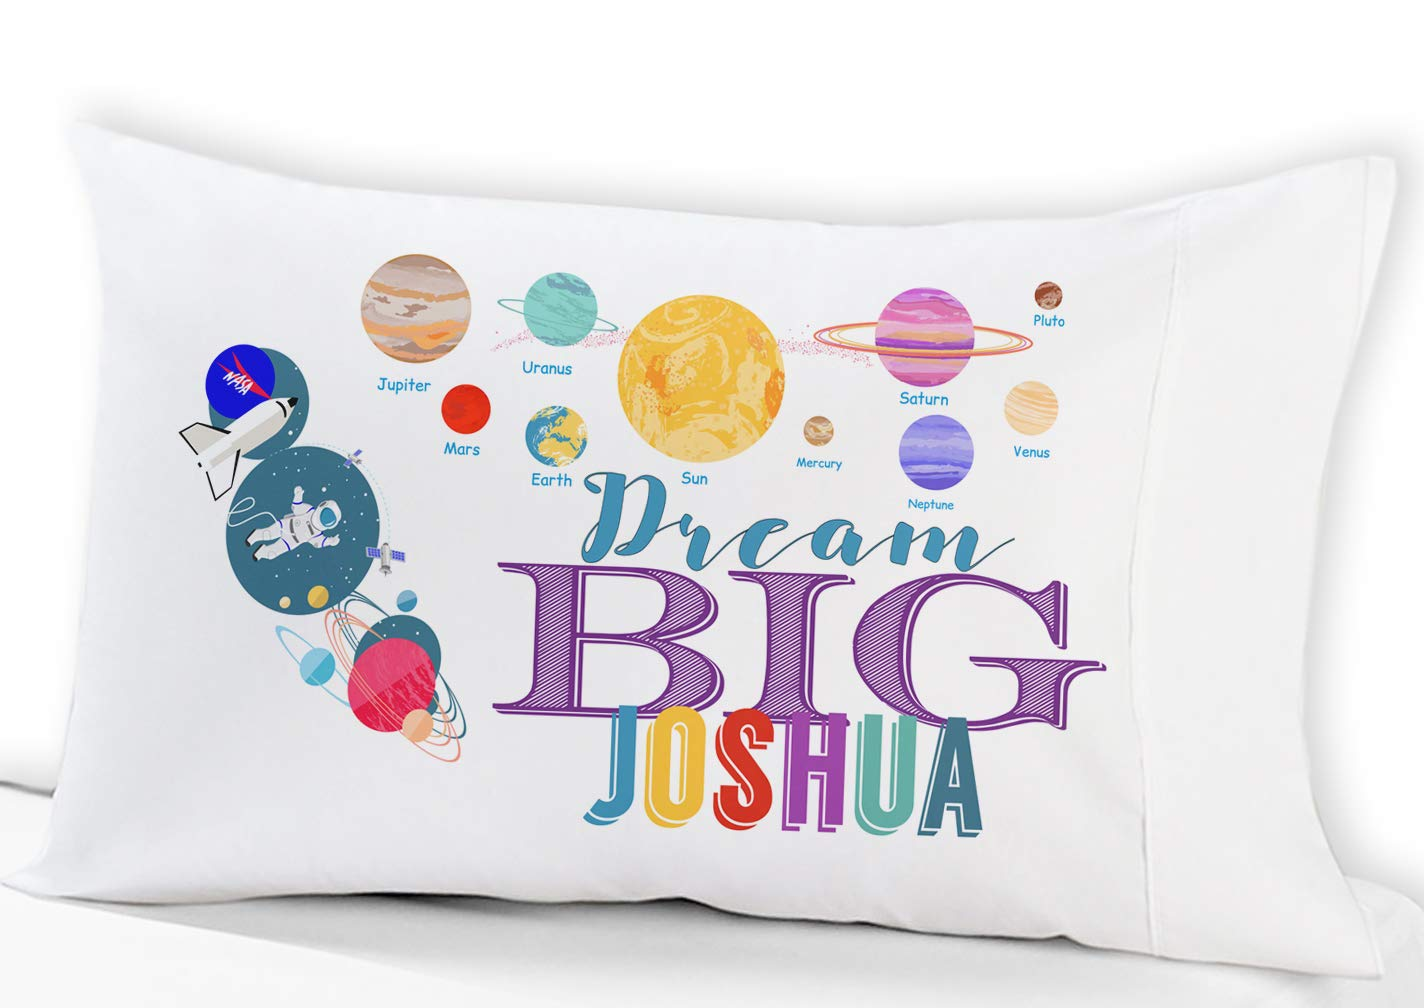 Personalized Space Solar System Dream Big Kids Pillow Case (Standard - Personalized) Christmas Birthday Gift idea for Boys Kids Astronaut Room Decor Stocking Factory PCASE-KIDS-SPACE-STD-PERS